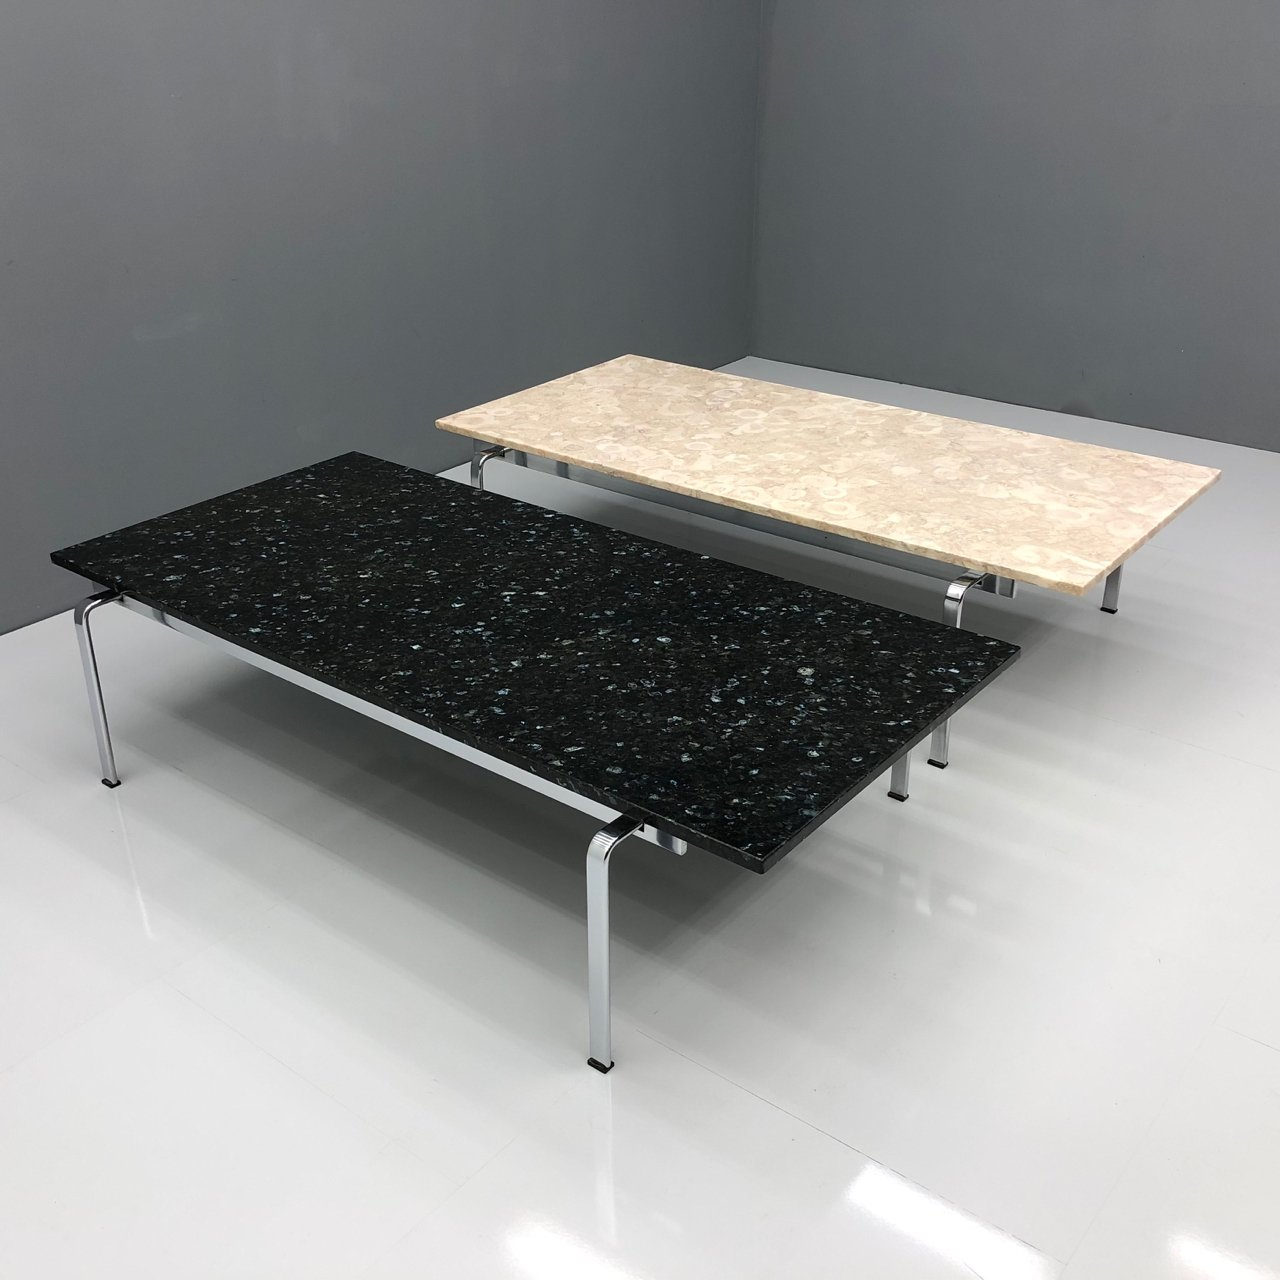 Granite Or Marble Fk 91 Coffee Tables By Preben Fabricius Jorgen